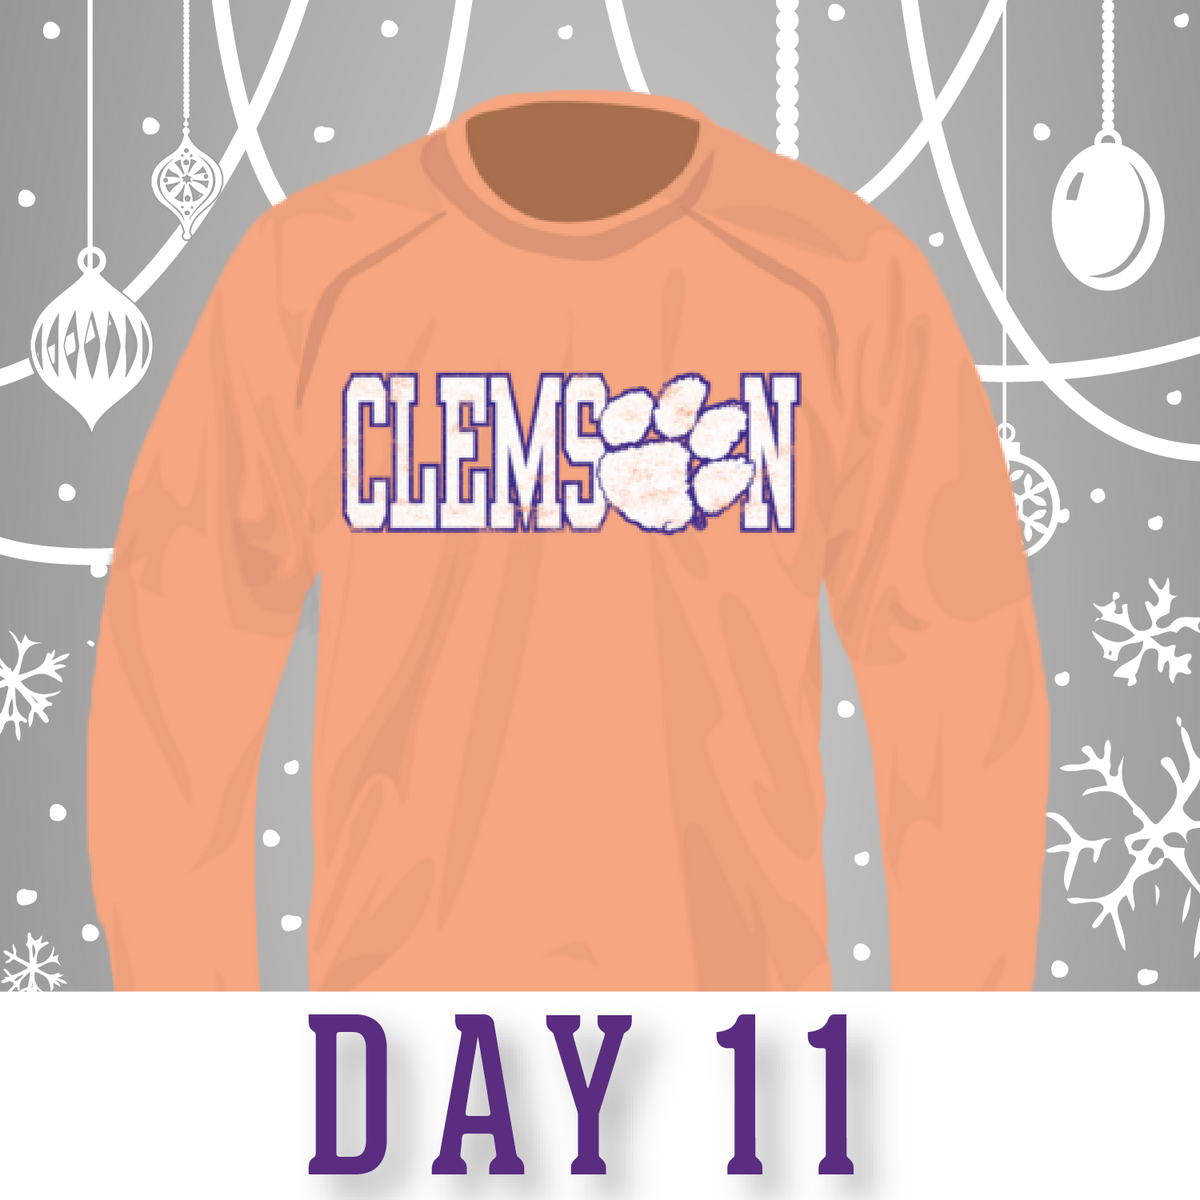 Today's #12DaysOfChristmas giveaway: Clemson #ComfortColors Crewneck! RT for your chance to win! #ClemsonChristmas https://t.co/3J5xlmrI27